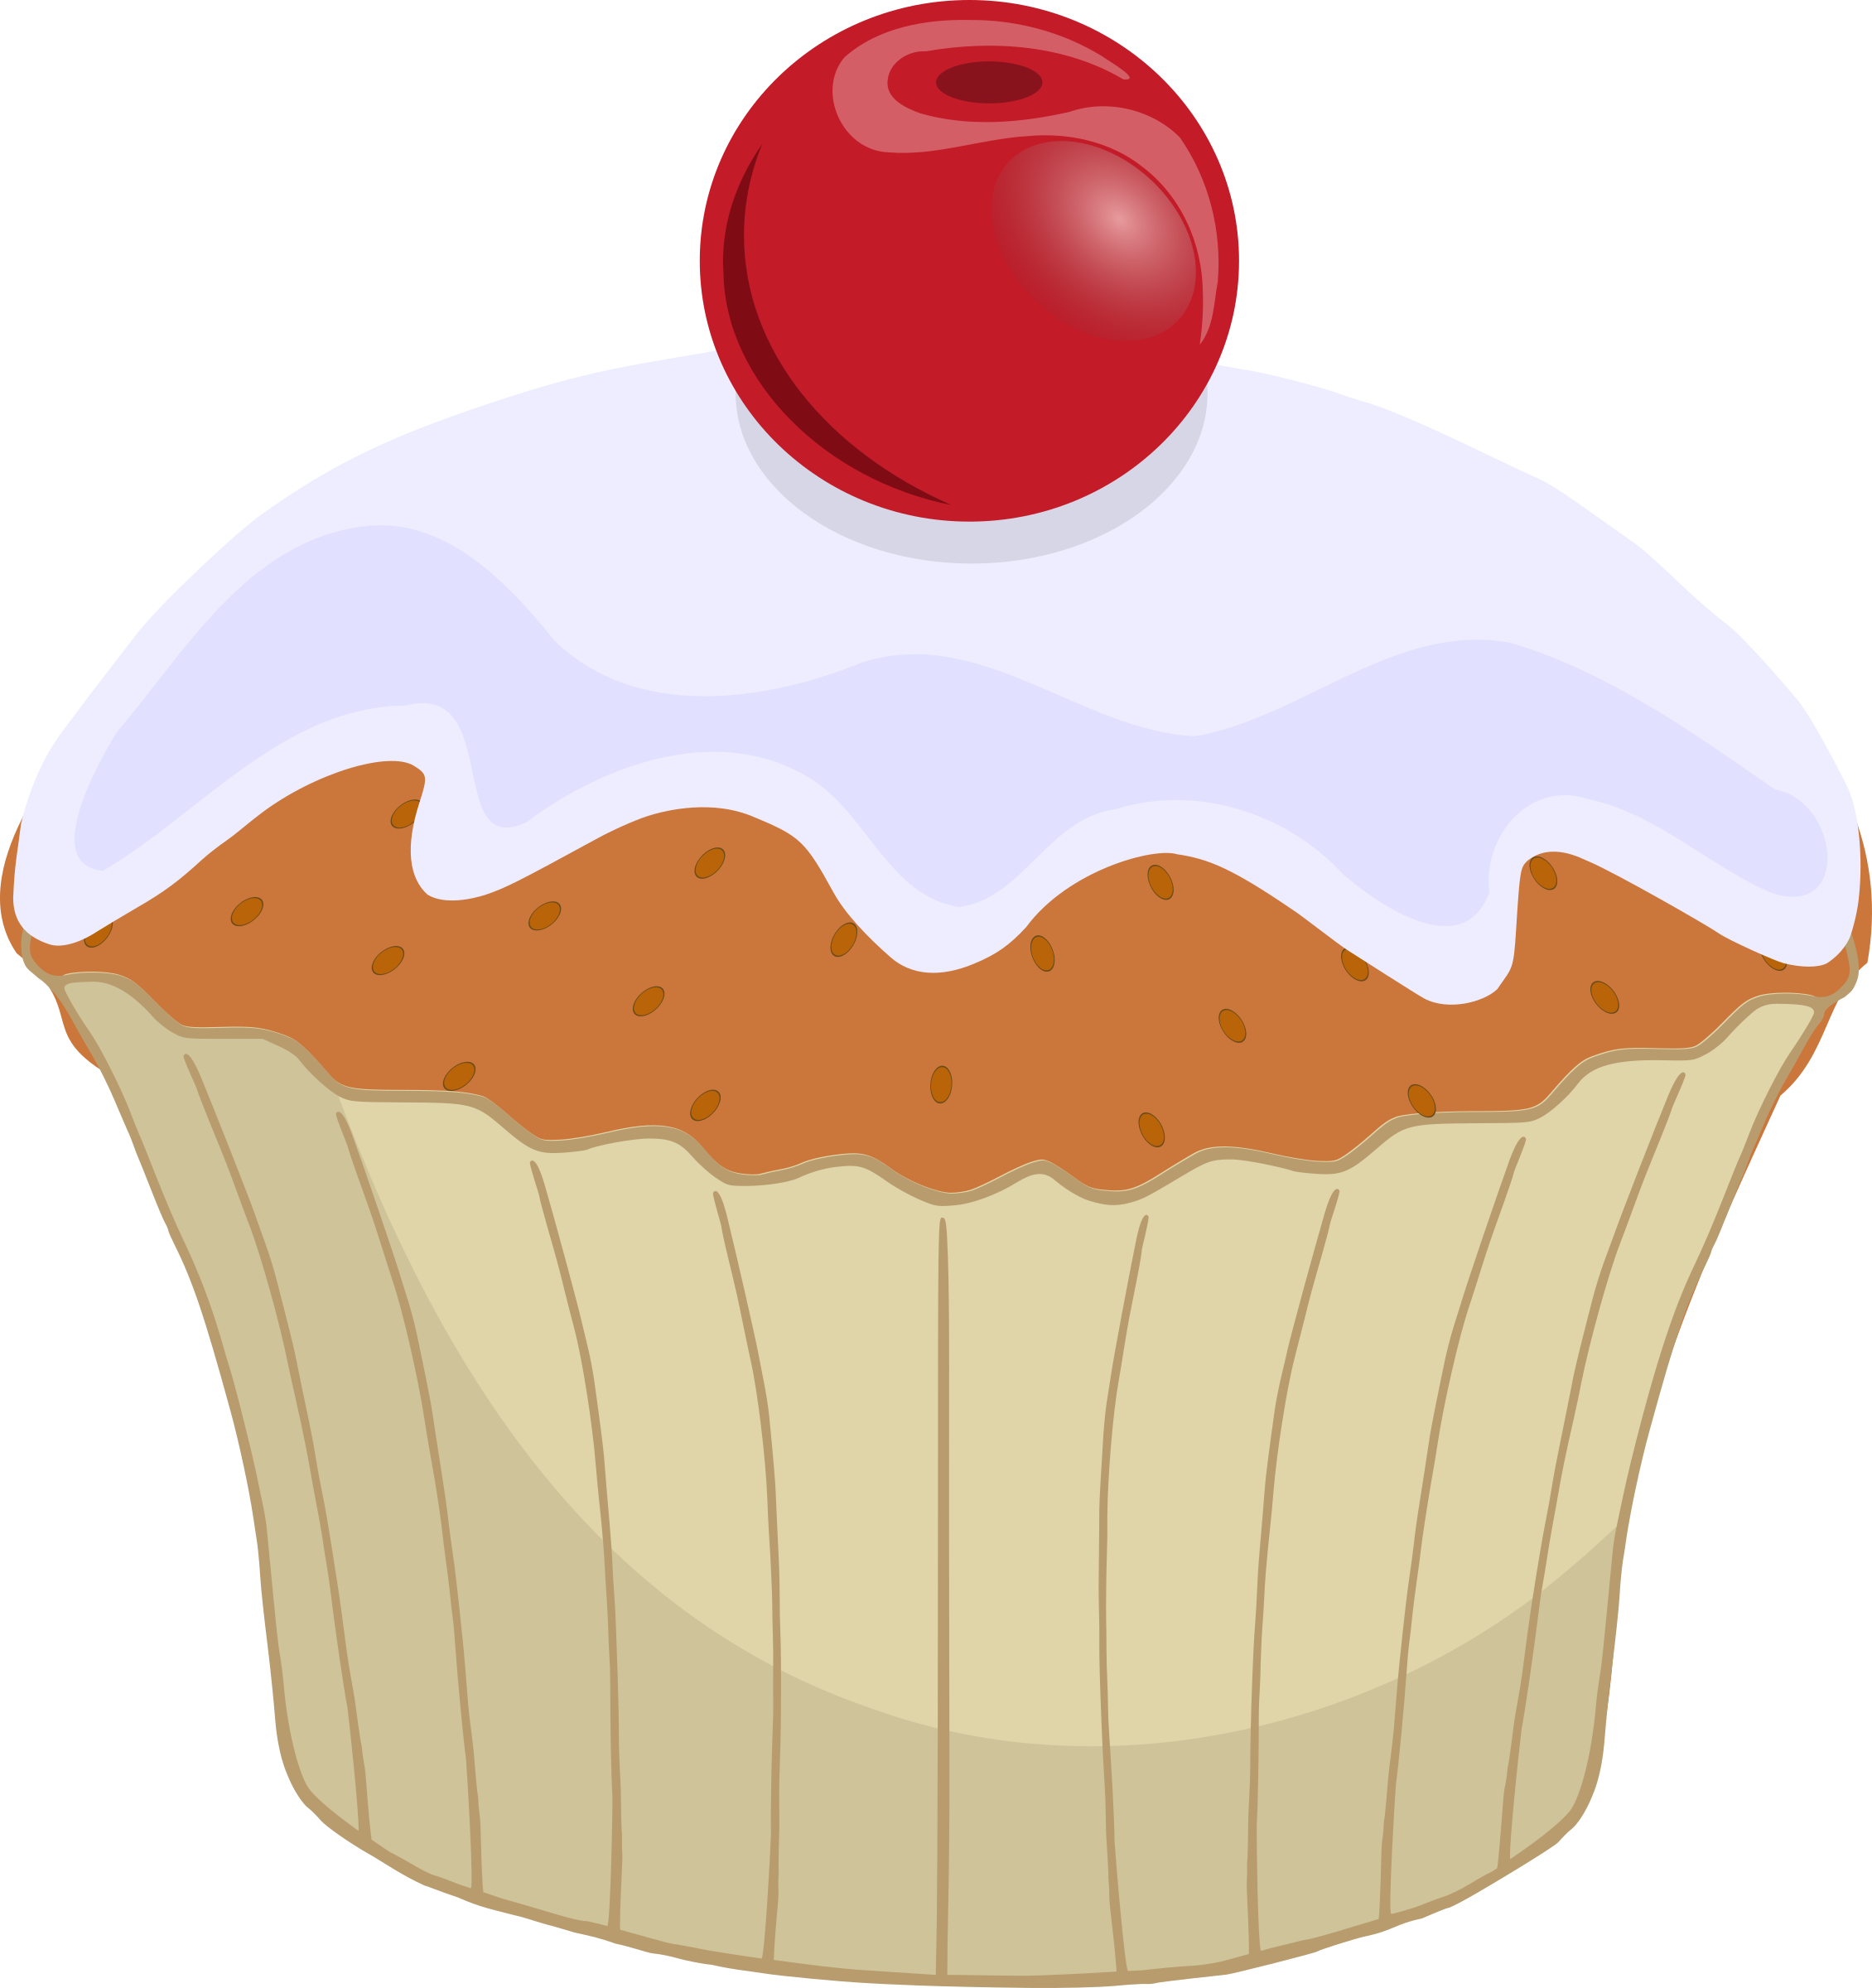 Muffins clipart february. Free january cupcakes cliparts